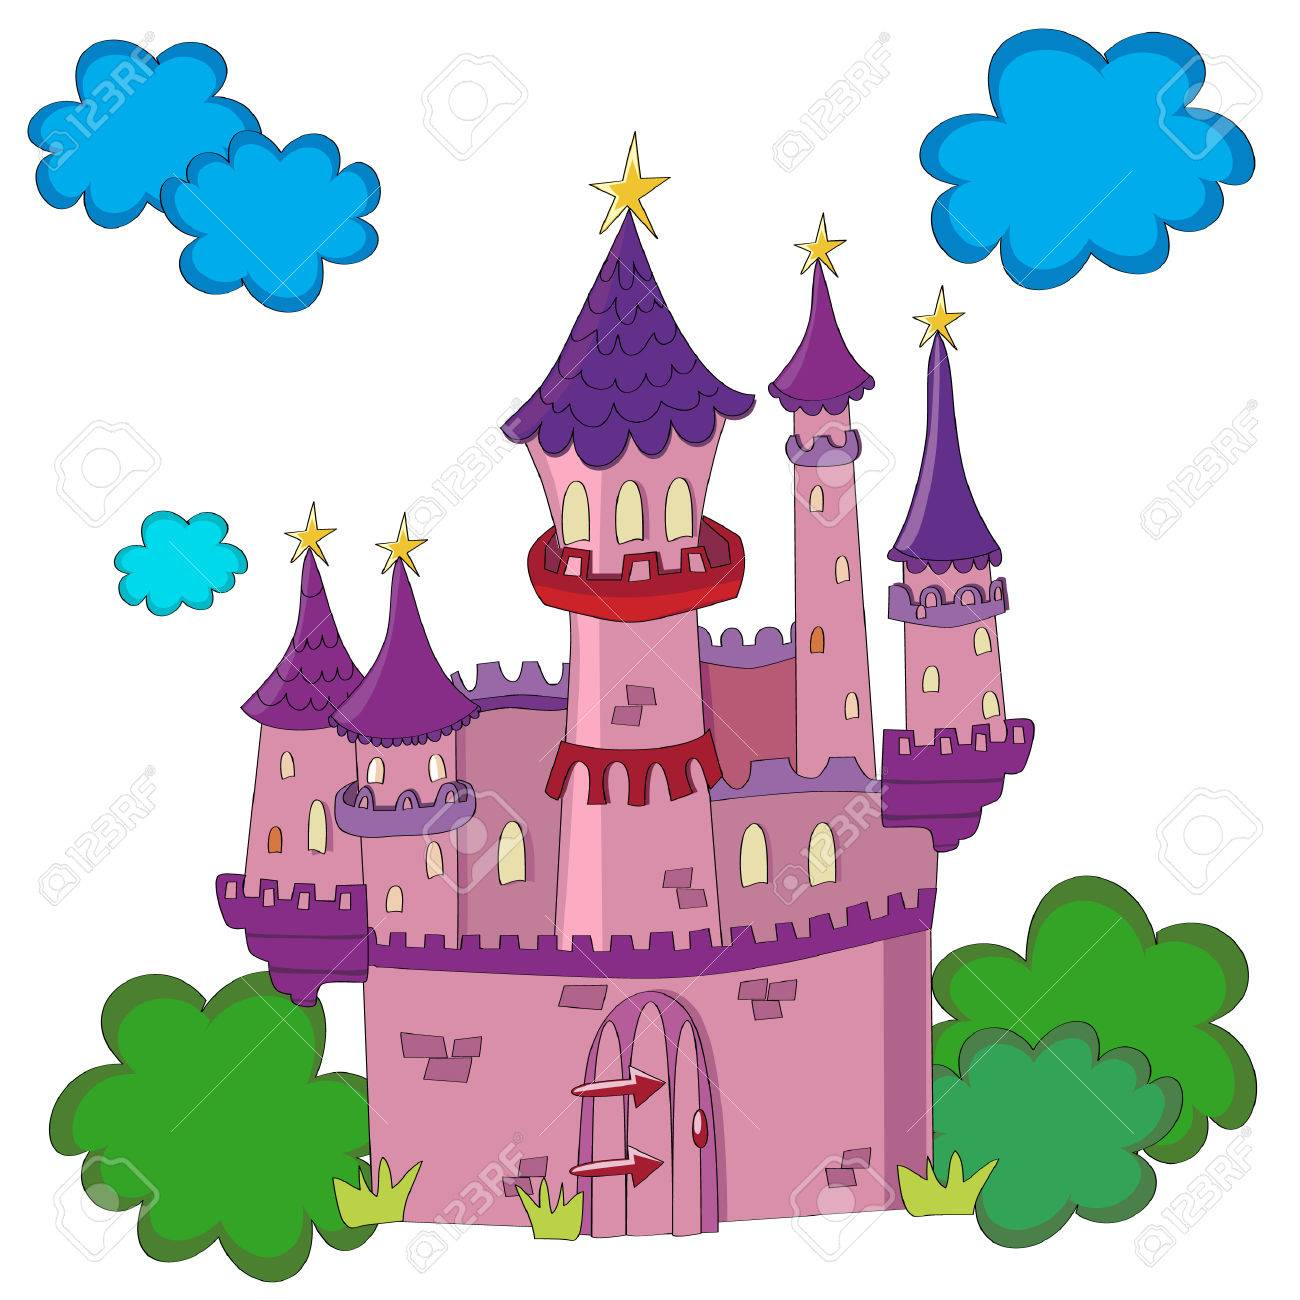 Fairy tale castle in a cute style. Stock Vector - 3426589